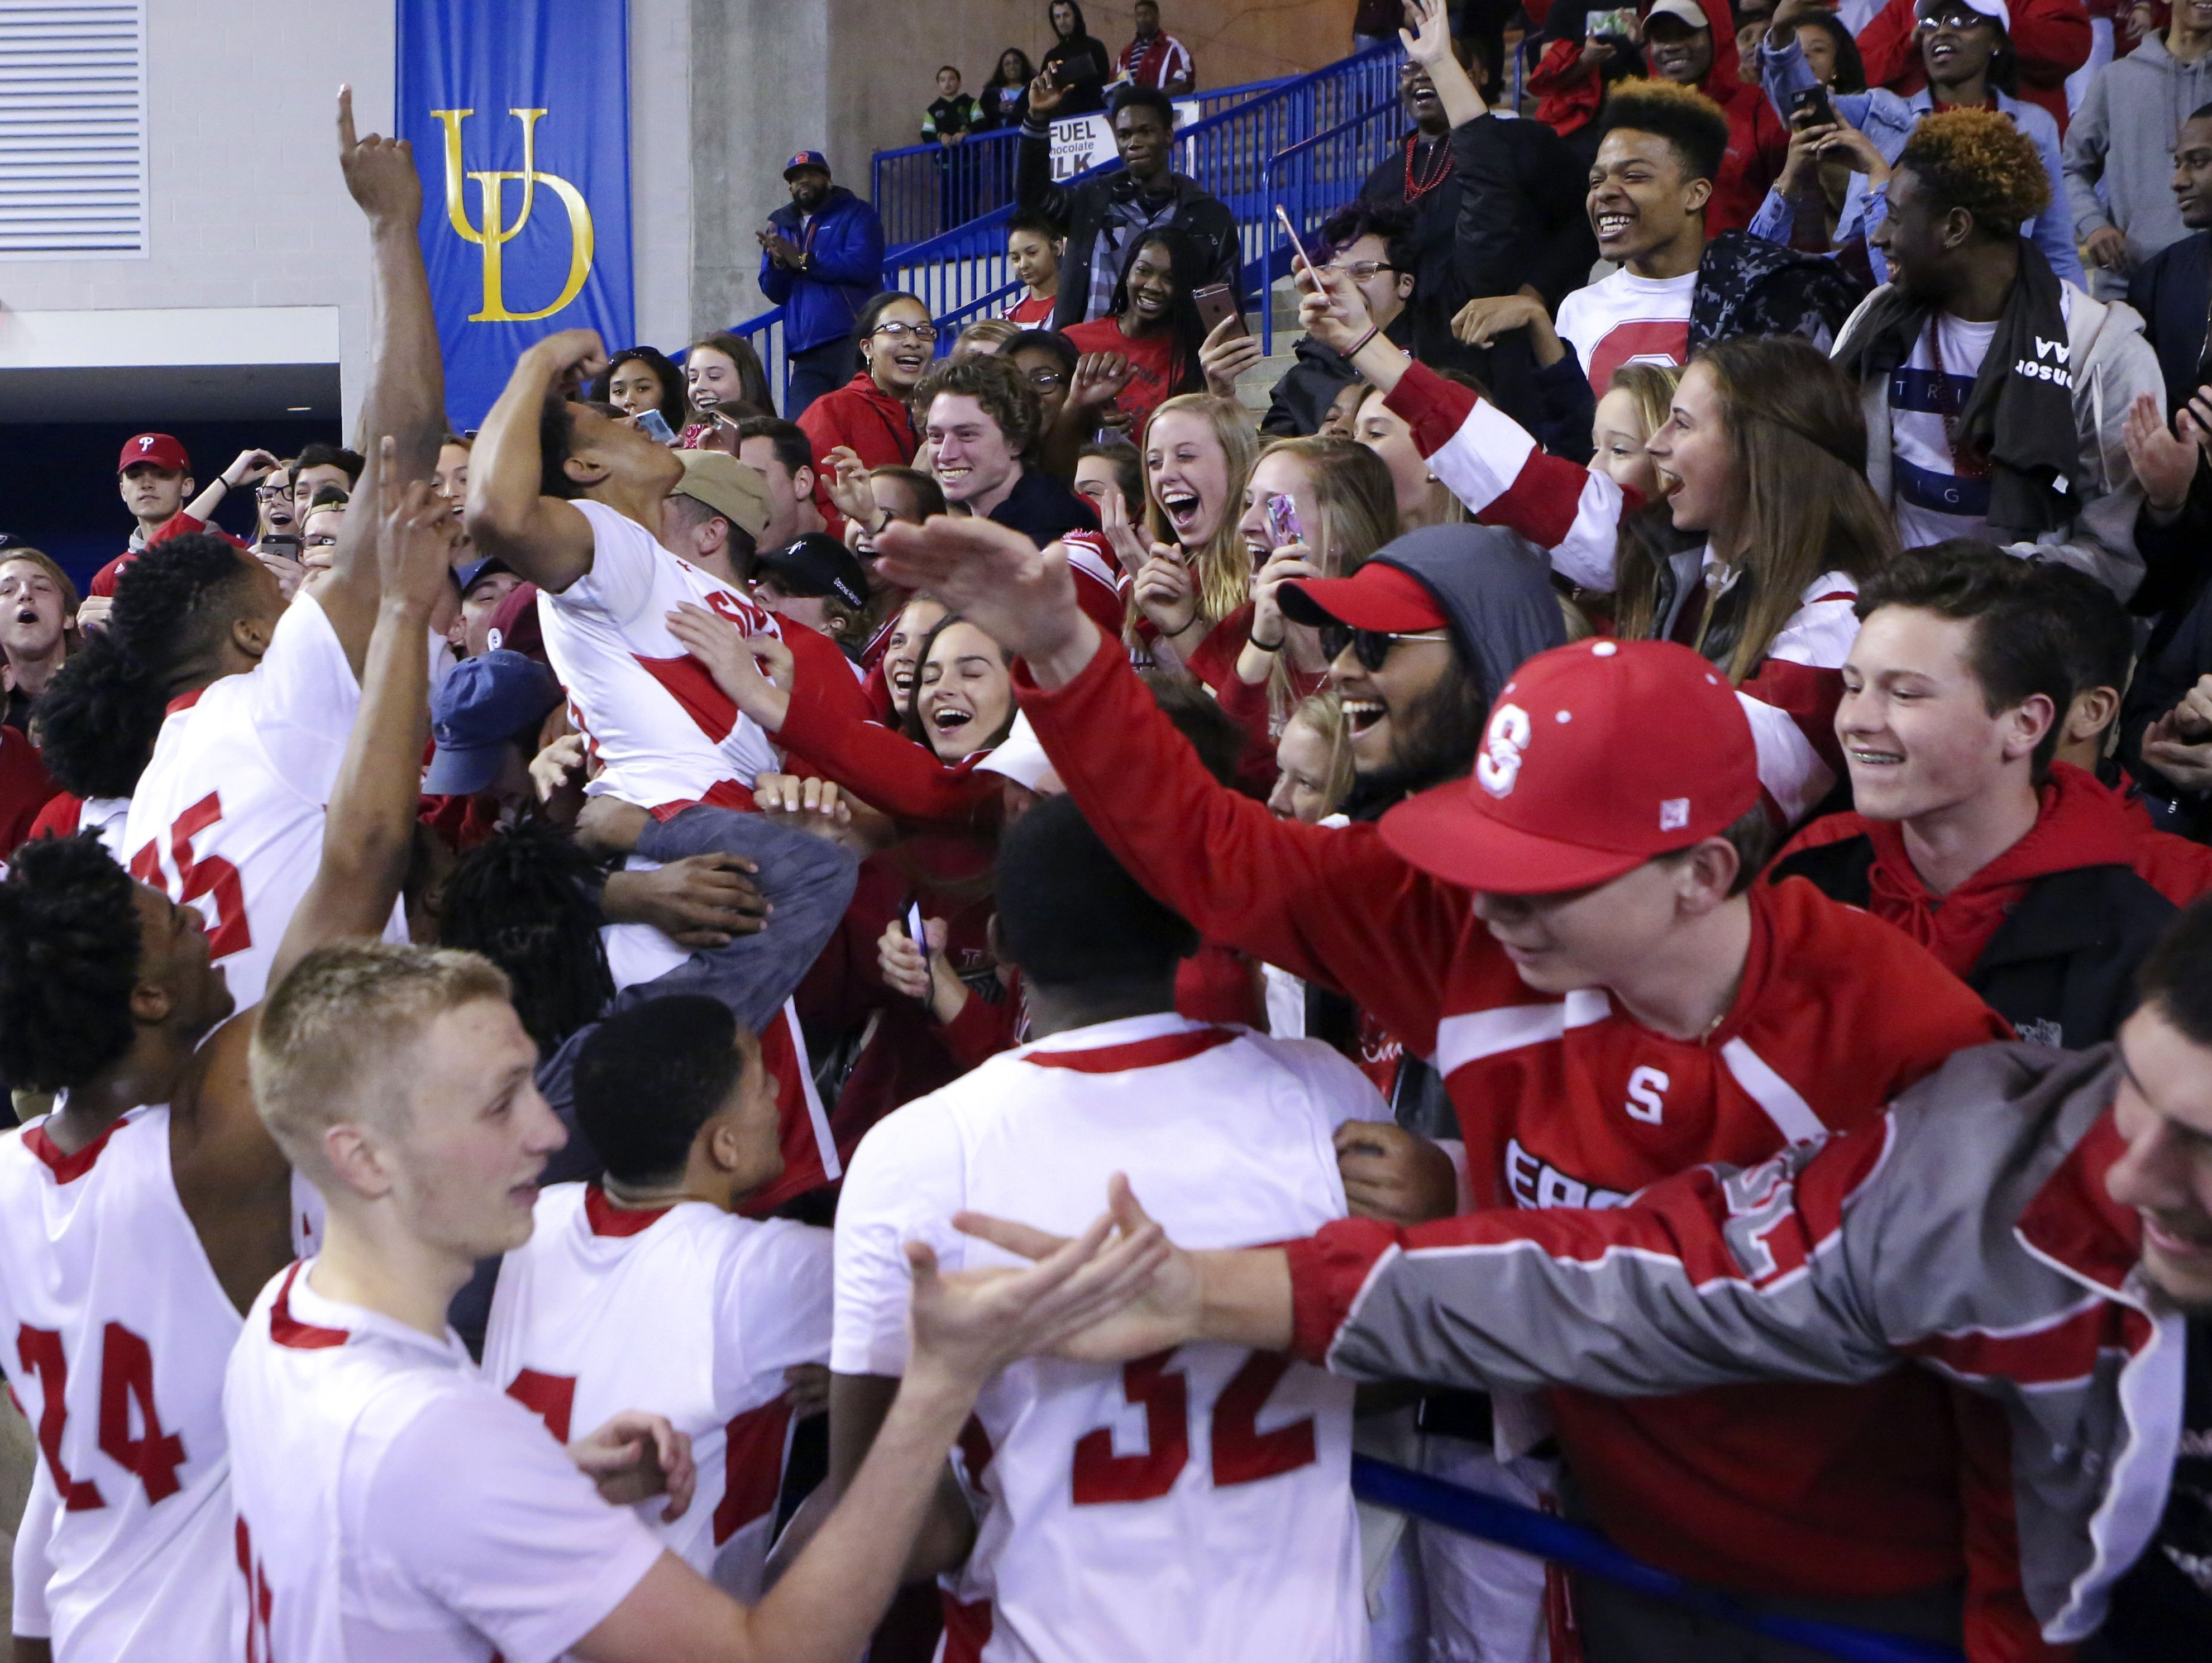 Smyrna team members celebrate with their classmates after beating Caravel 61-53 to win the DIAA state tournament title game at the Bob Carpenter Center Saturday.